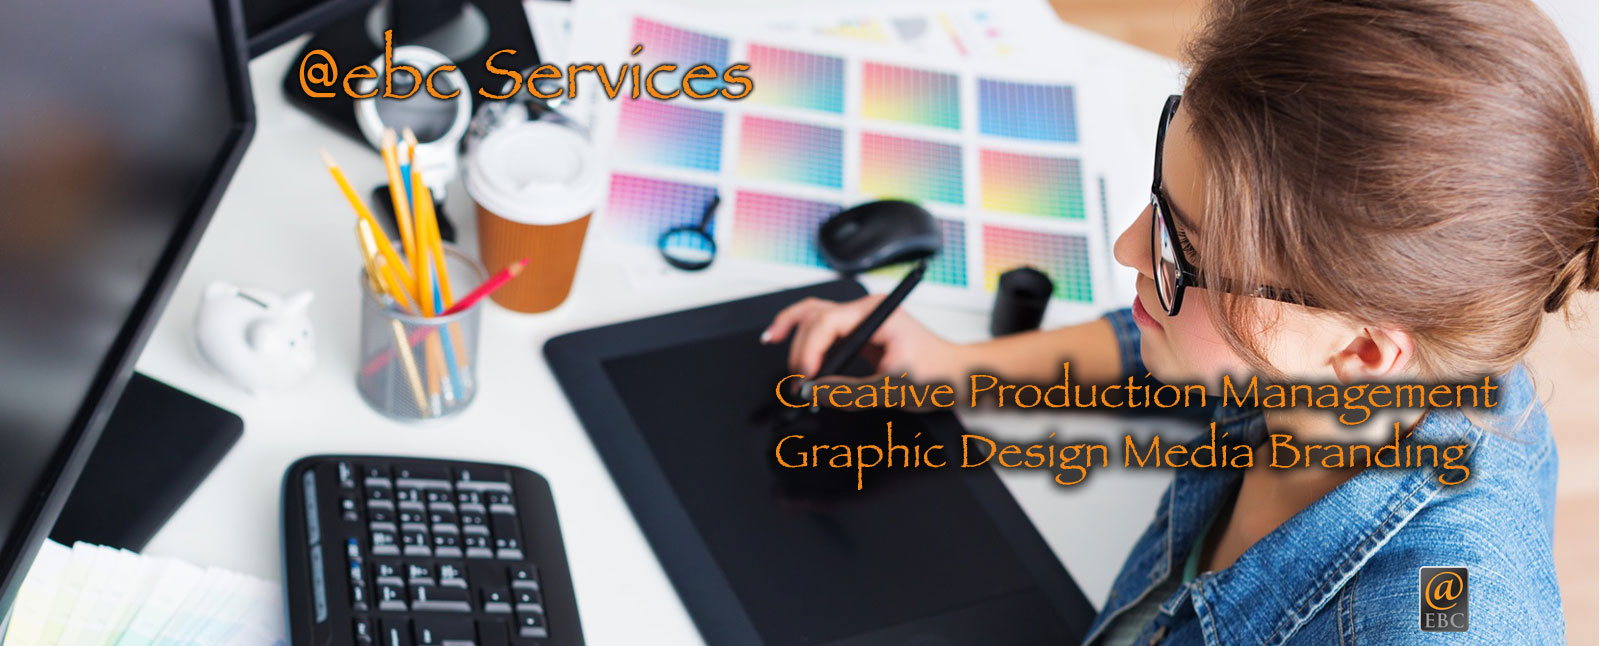 graphic design media branding services